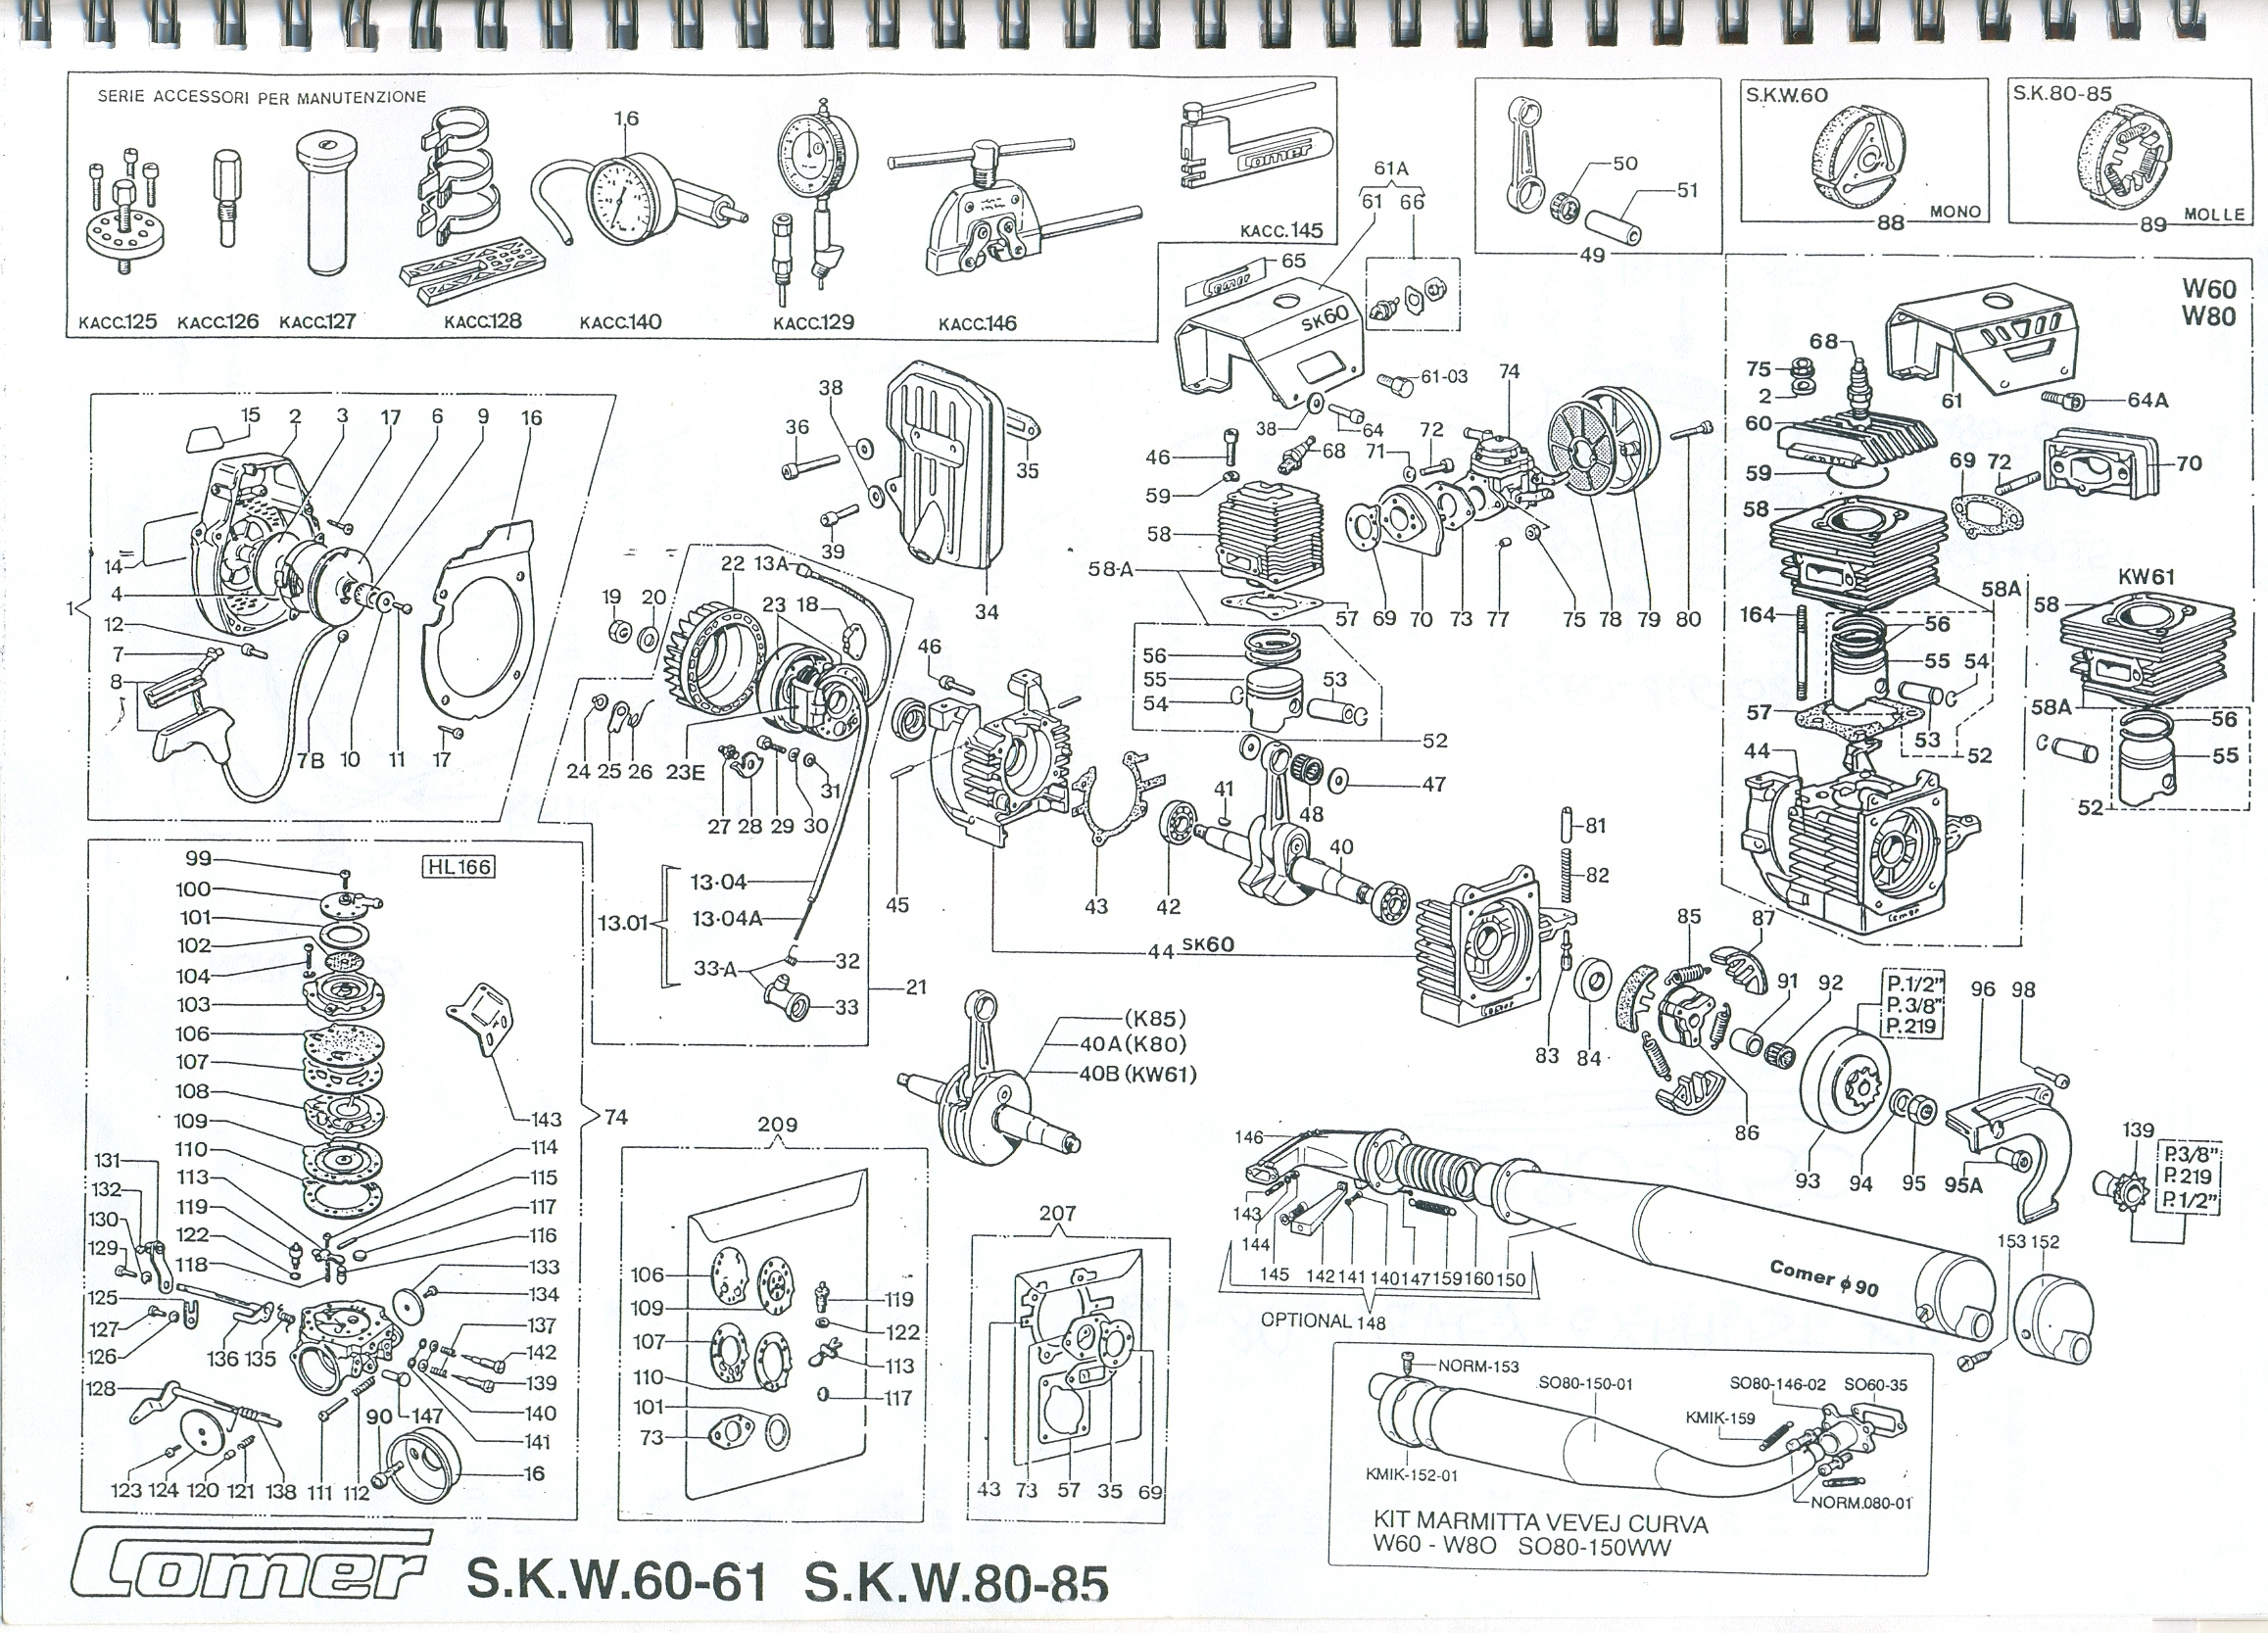 how can get full engine diagrams grabcad questions jet engines how they work ge jet engine diagram [ 2315 x 1667 Pixel ]